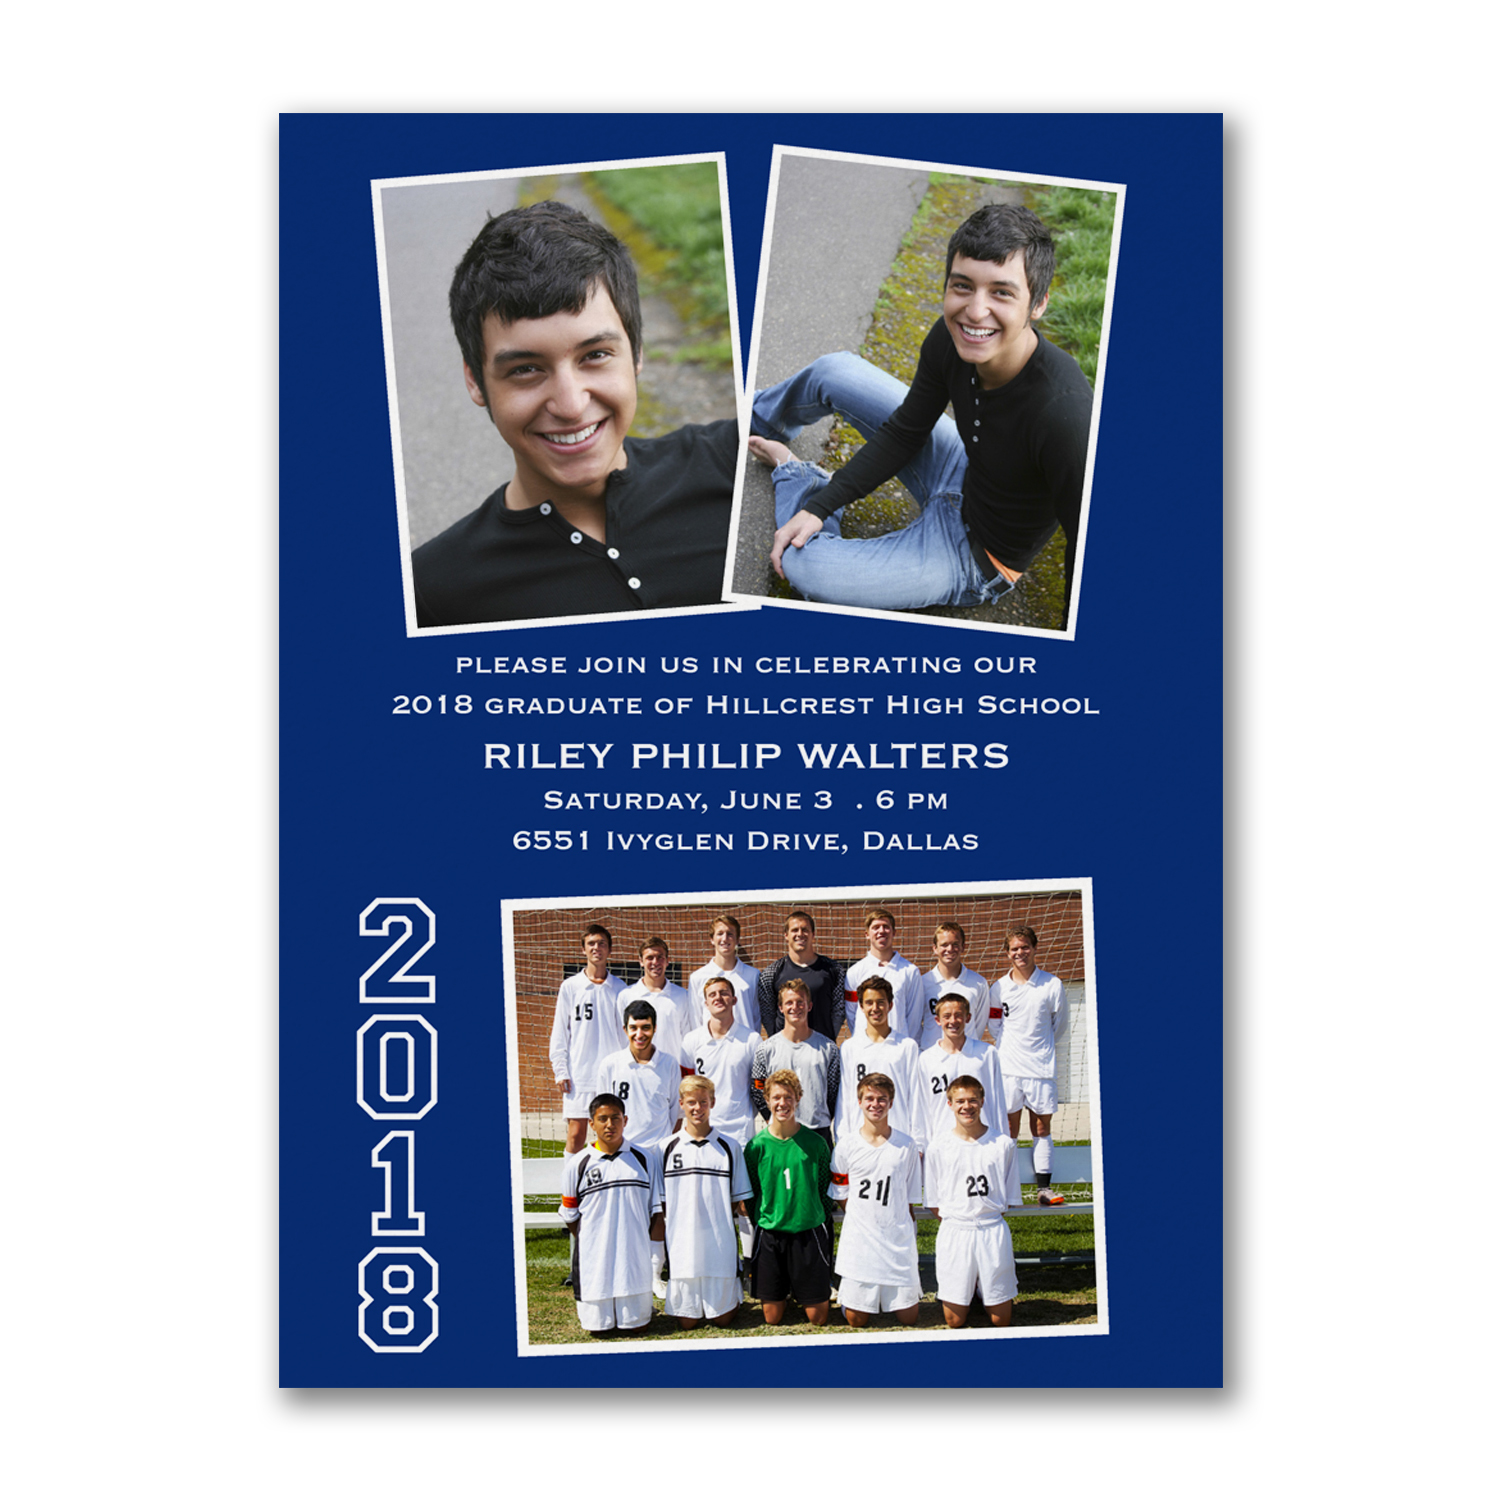 photo collage navy graduation invitaiton